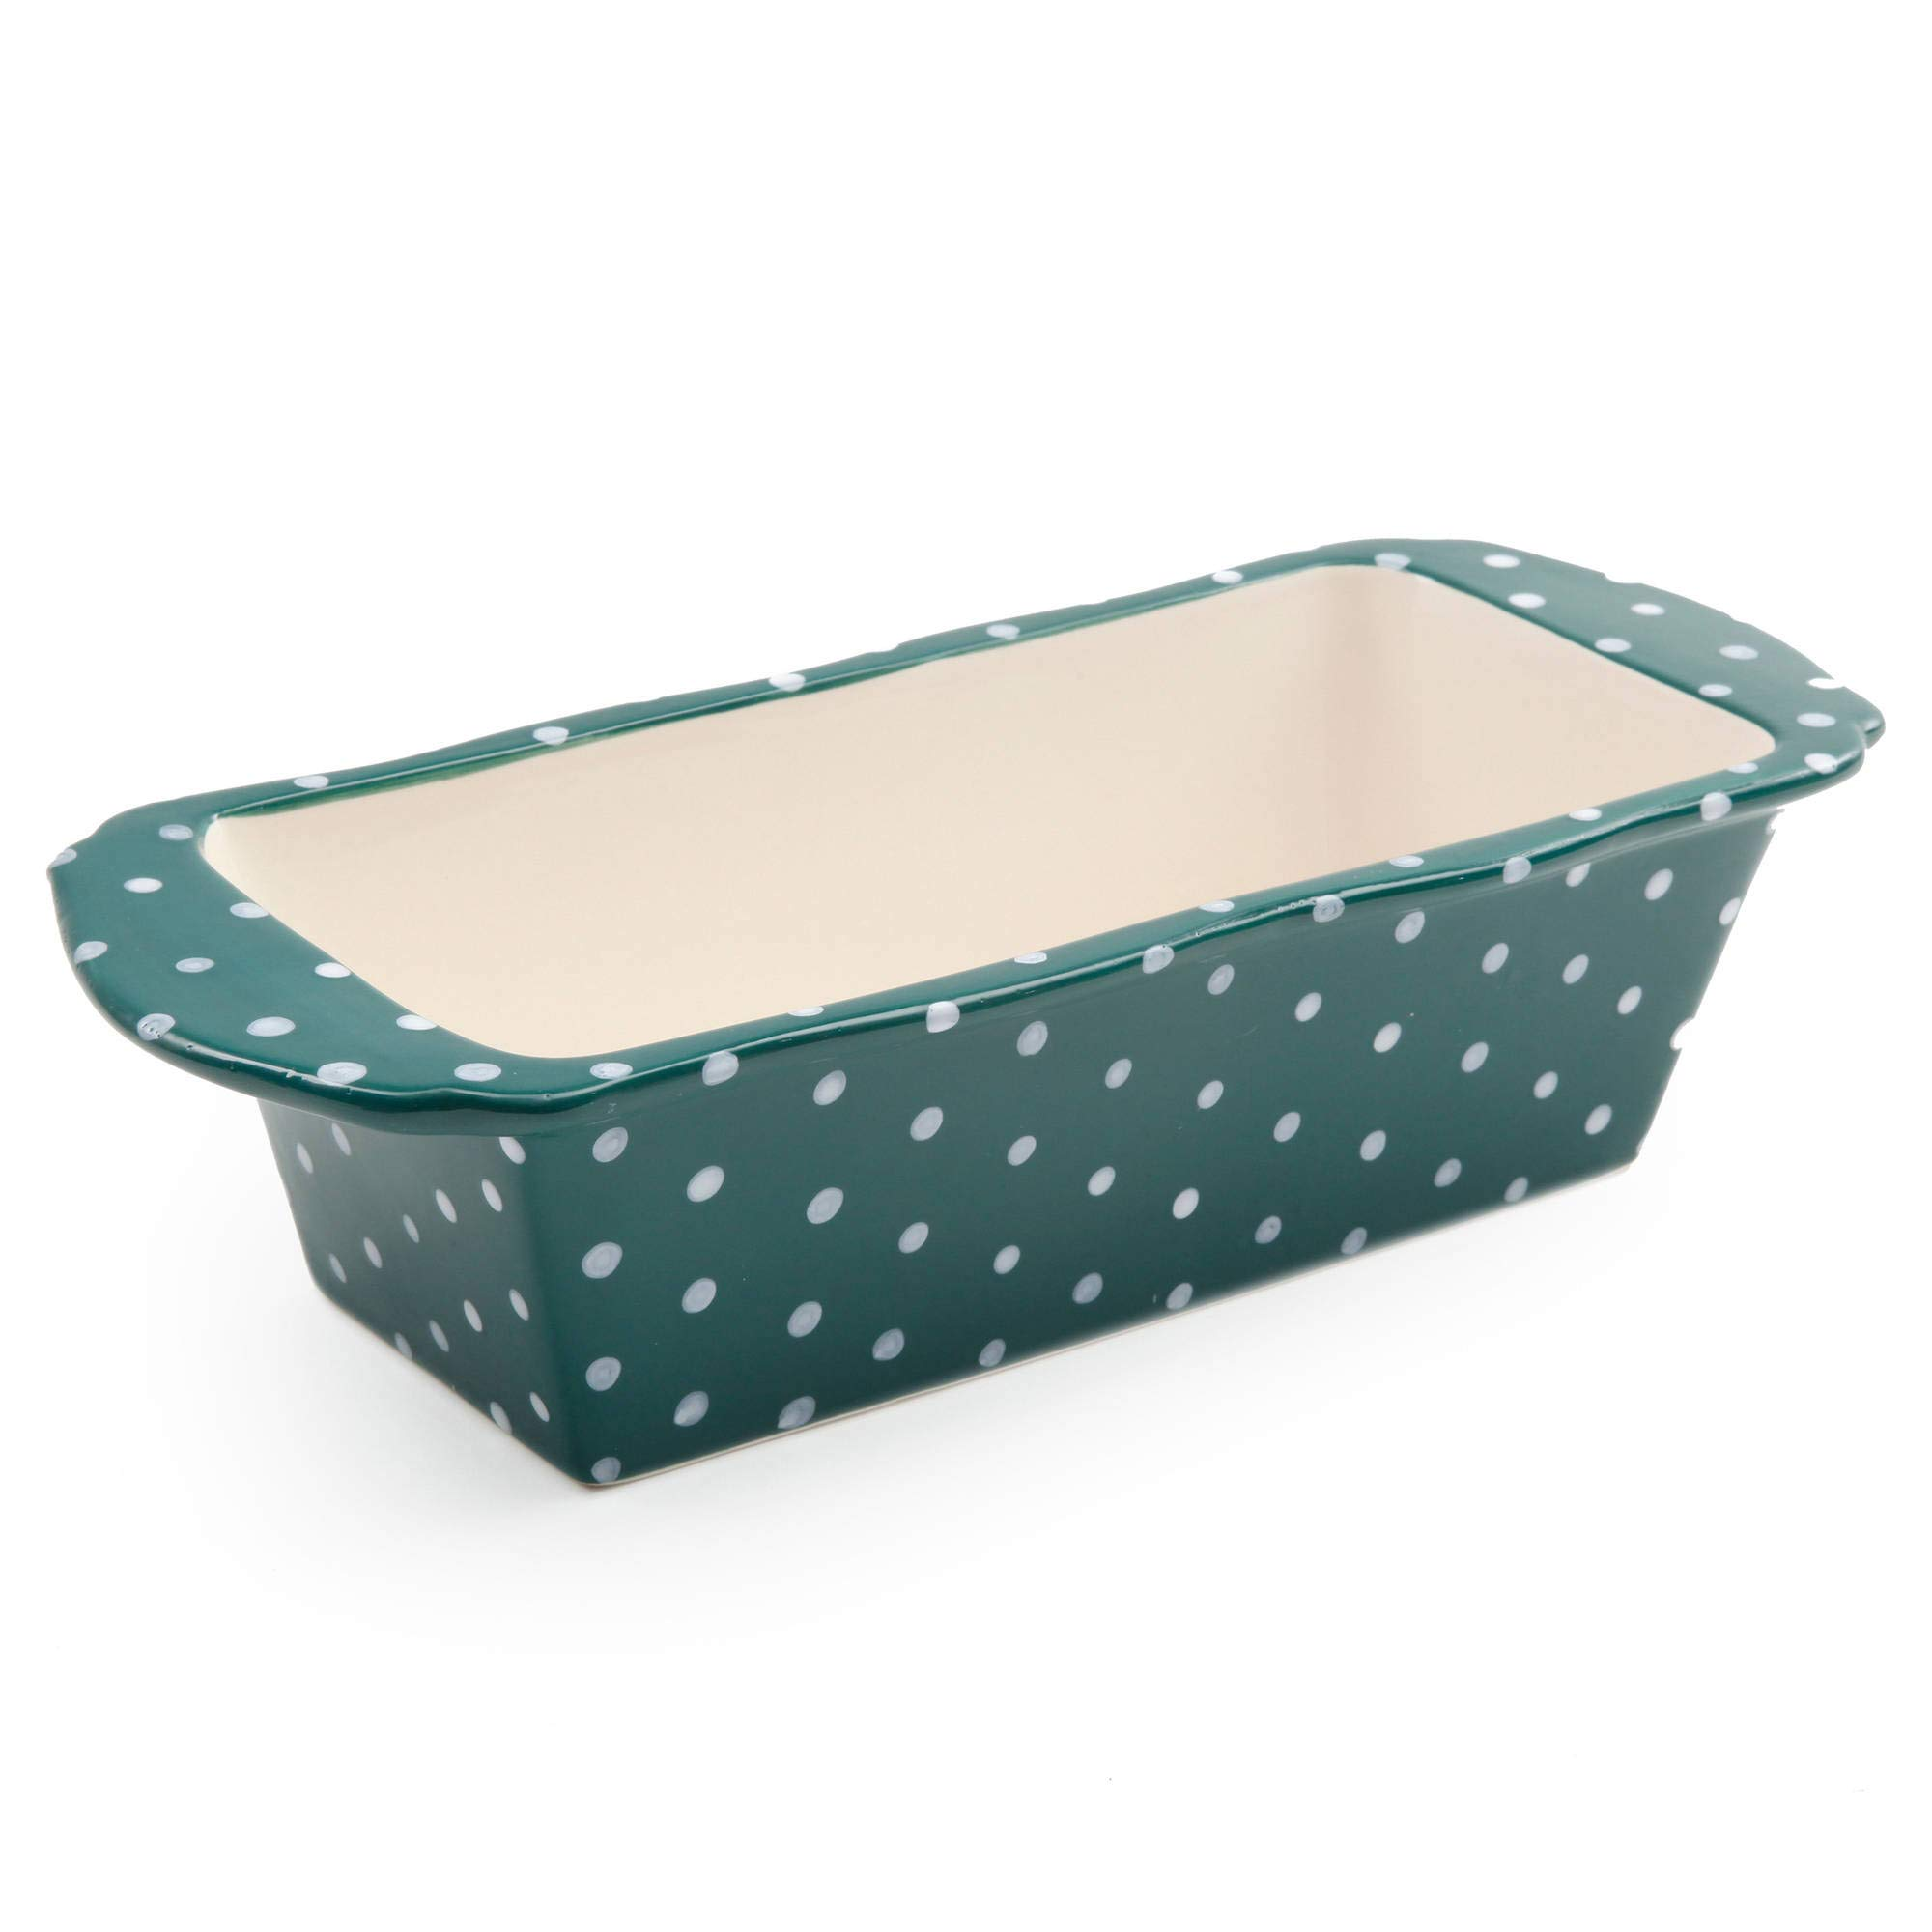 The Pioneer Woman''Retro Dots'' Stoneware Loaf Pan 9.5'' x 4.5'' x 2.6'' by The Pioneer Woman (Image #2)